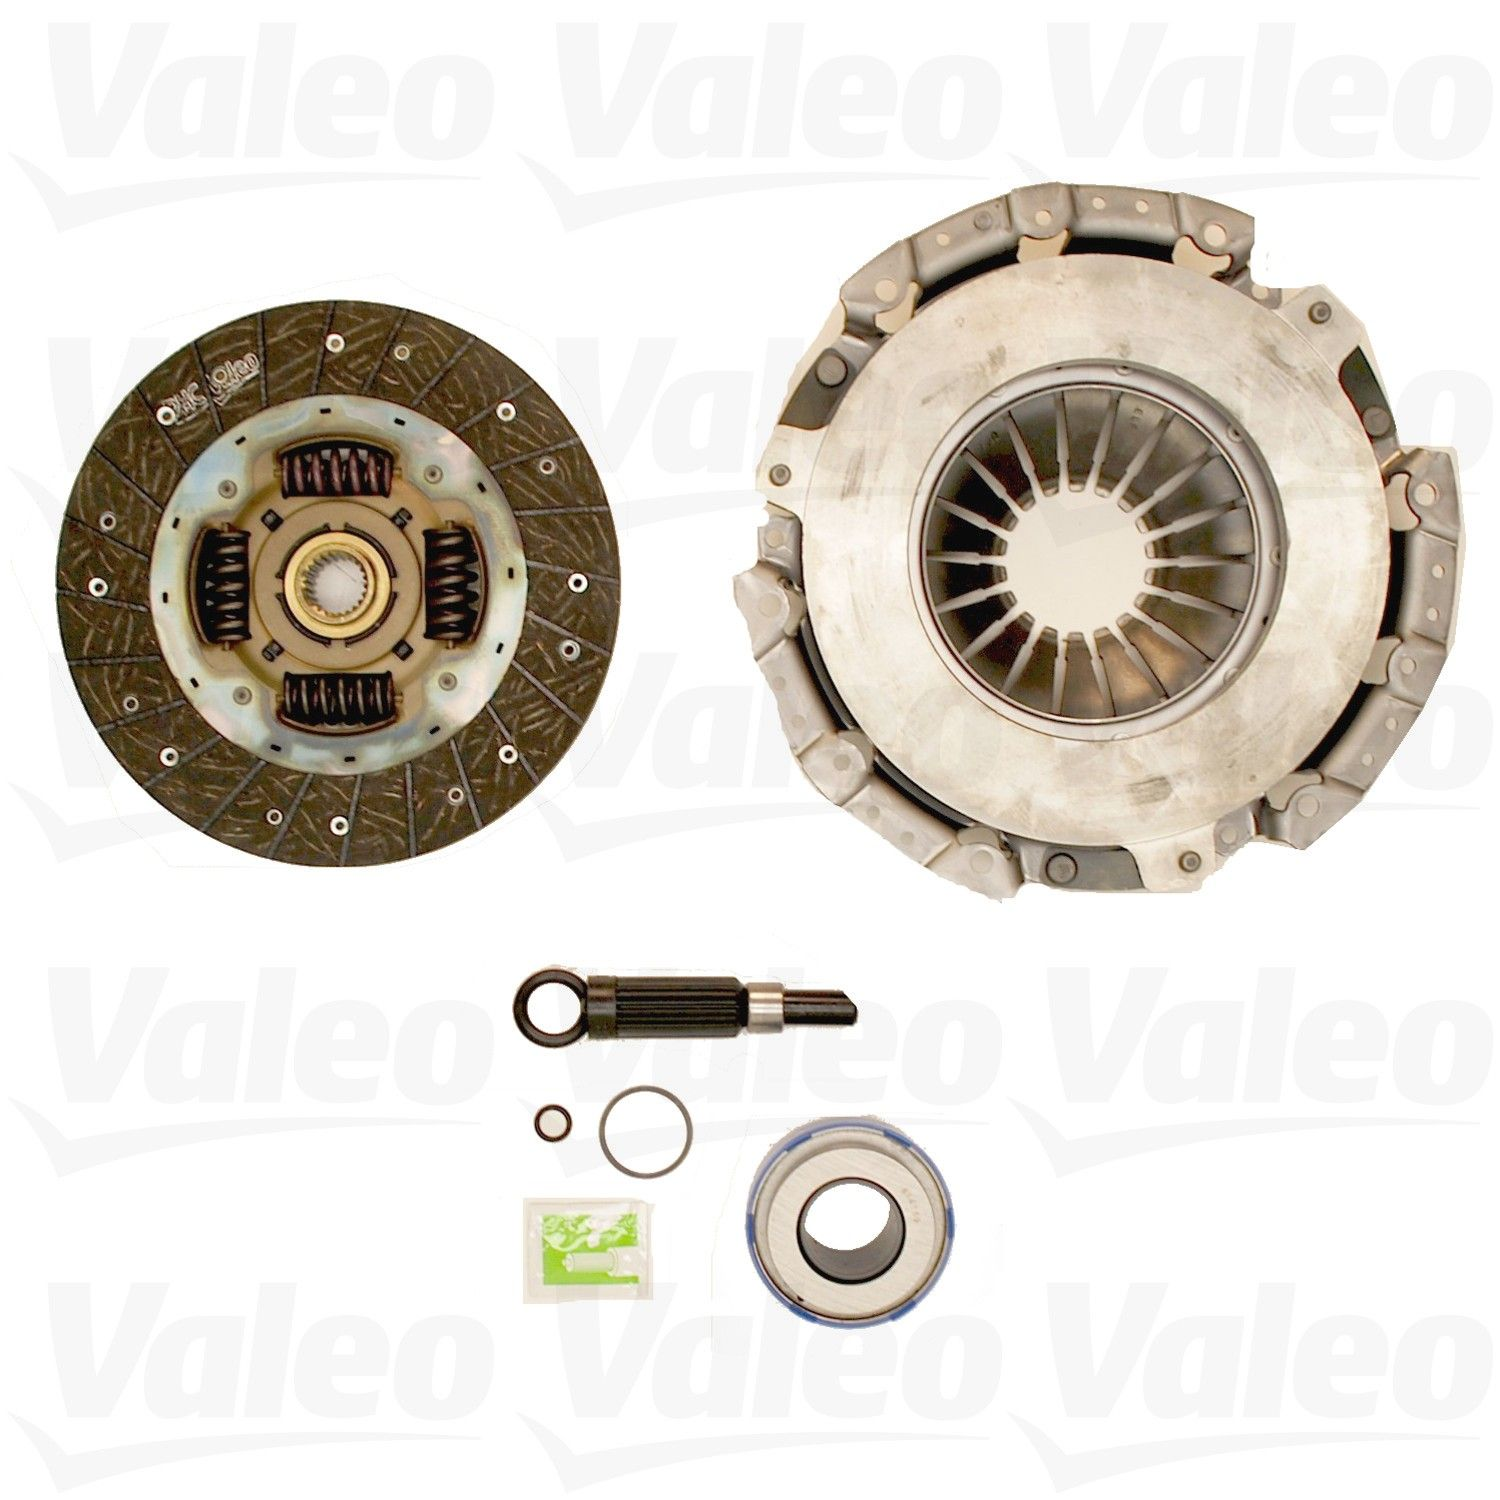 Ford Ranger Clutch Kit Replacement (Beck Arnley, Exedy, LuK, Rhino